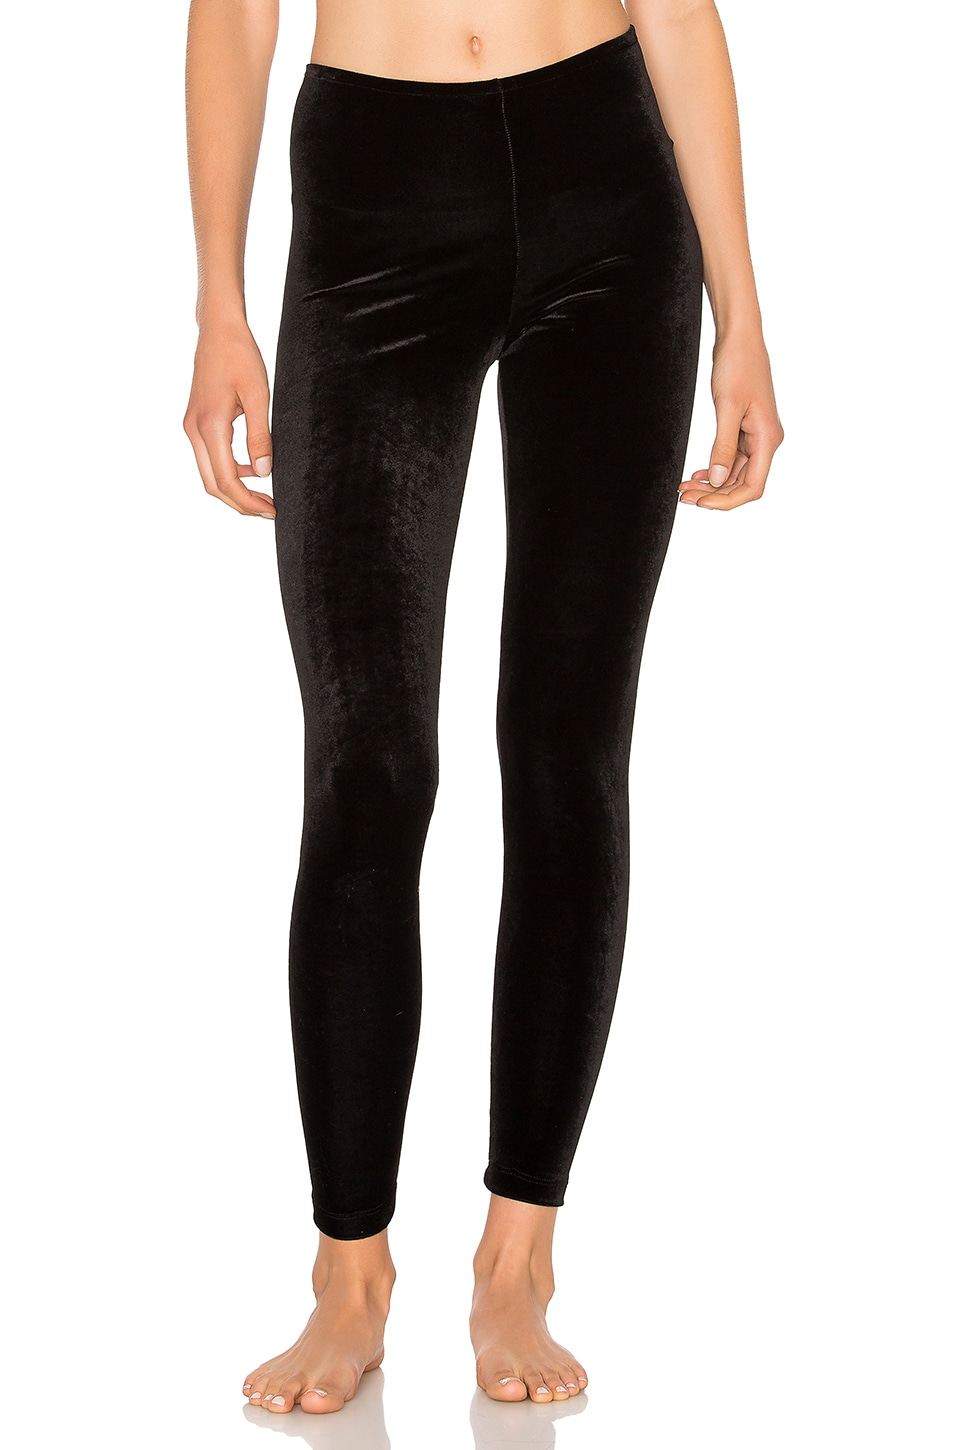 Only Hearts Velvet Underground Legging in Black